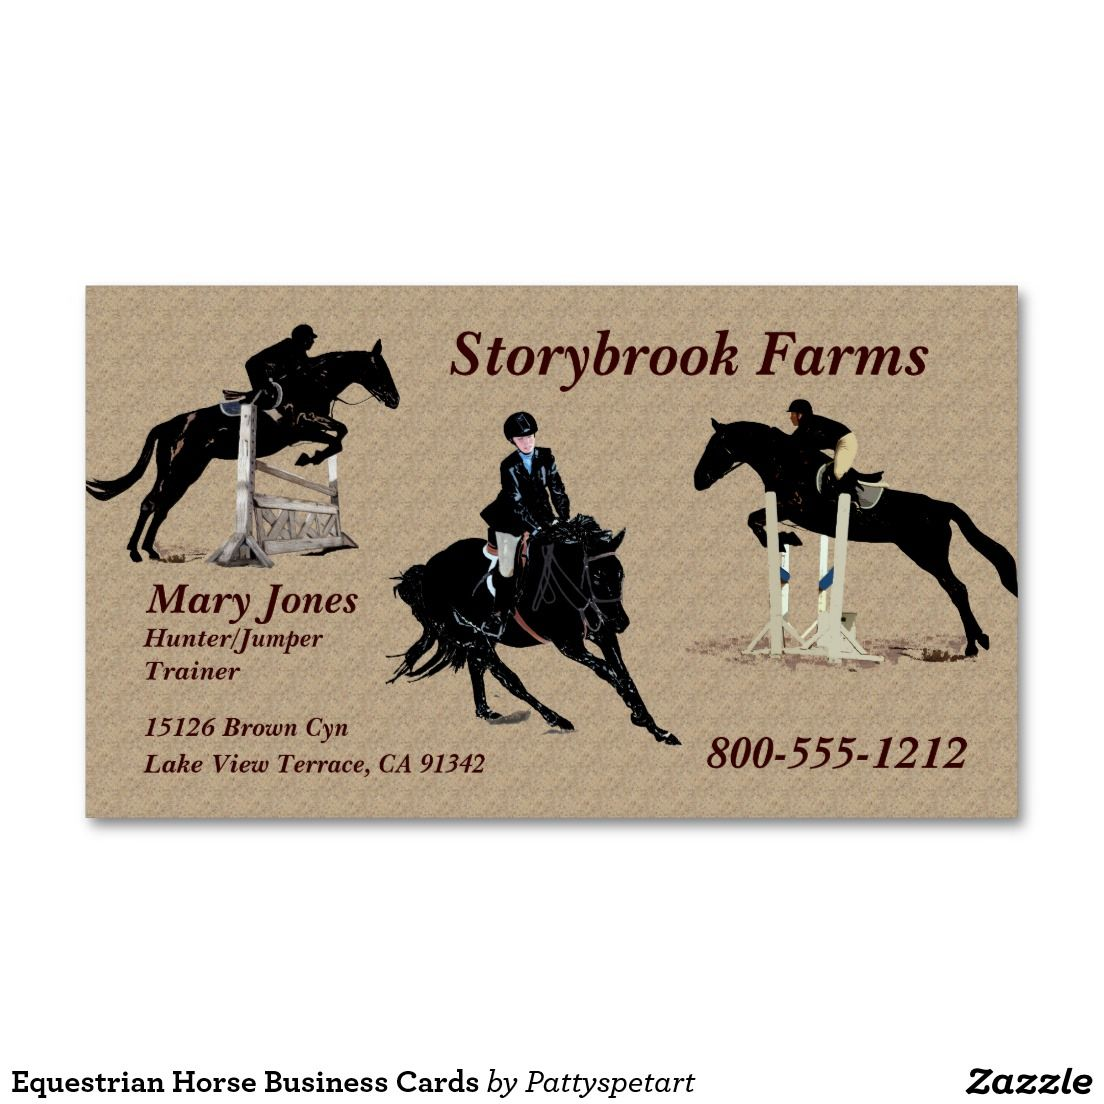 Equestrian Horse Business Cards   Business cards and Horse